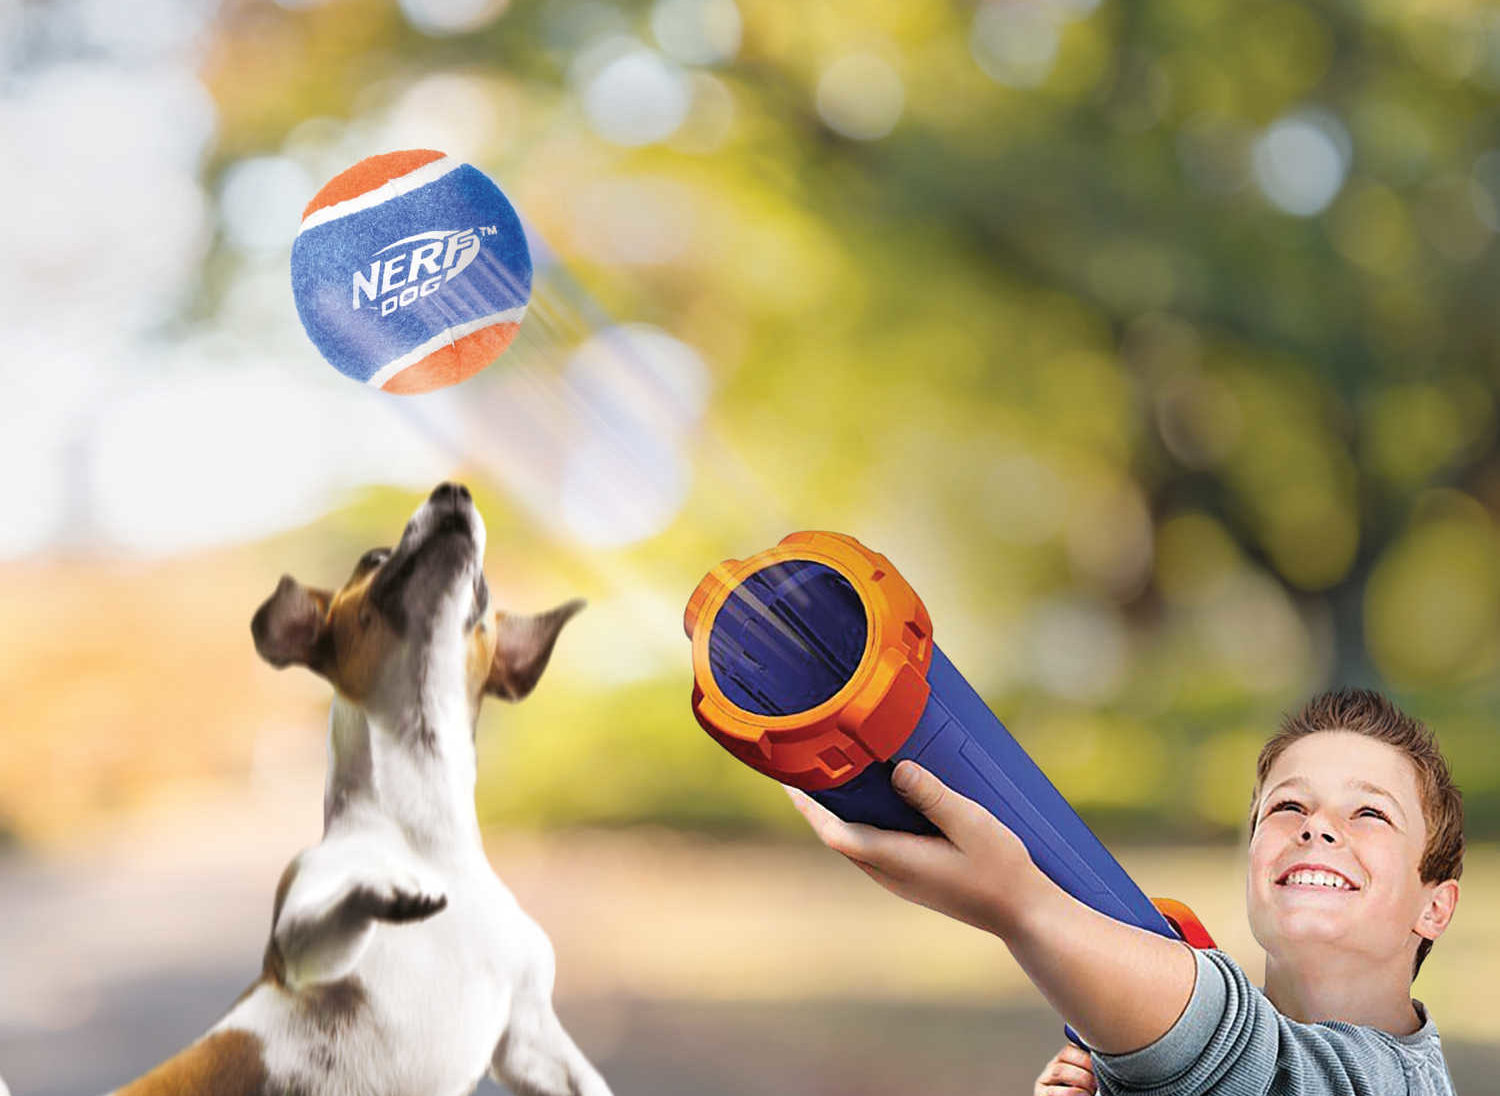 You Can Finally Buy A Nerf Tennis Ball Launcher For Your Dog